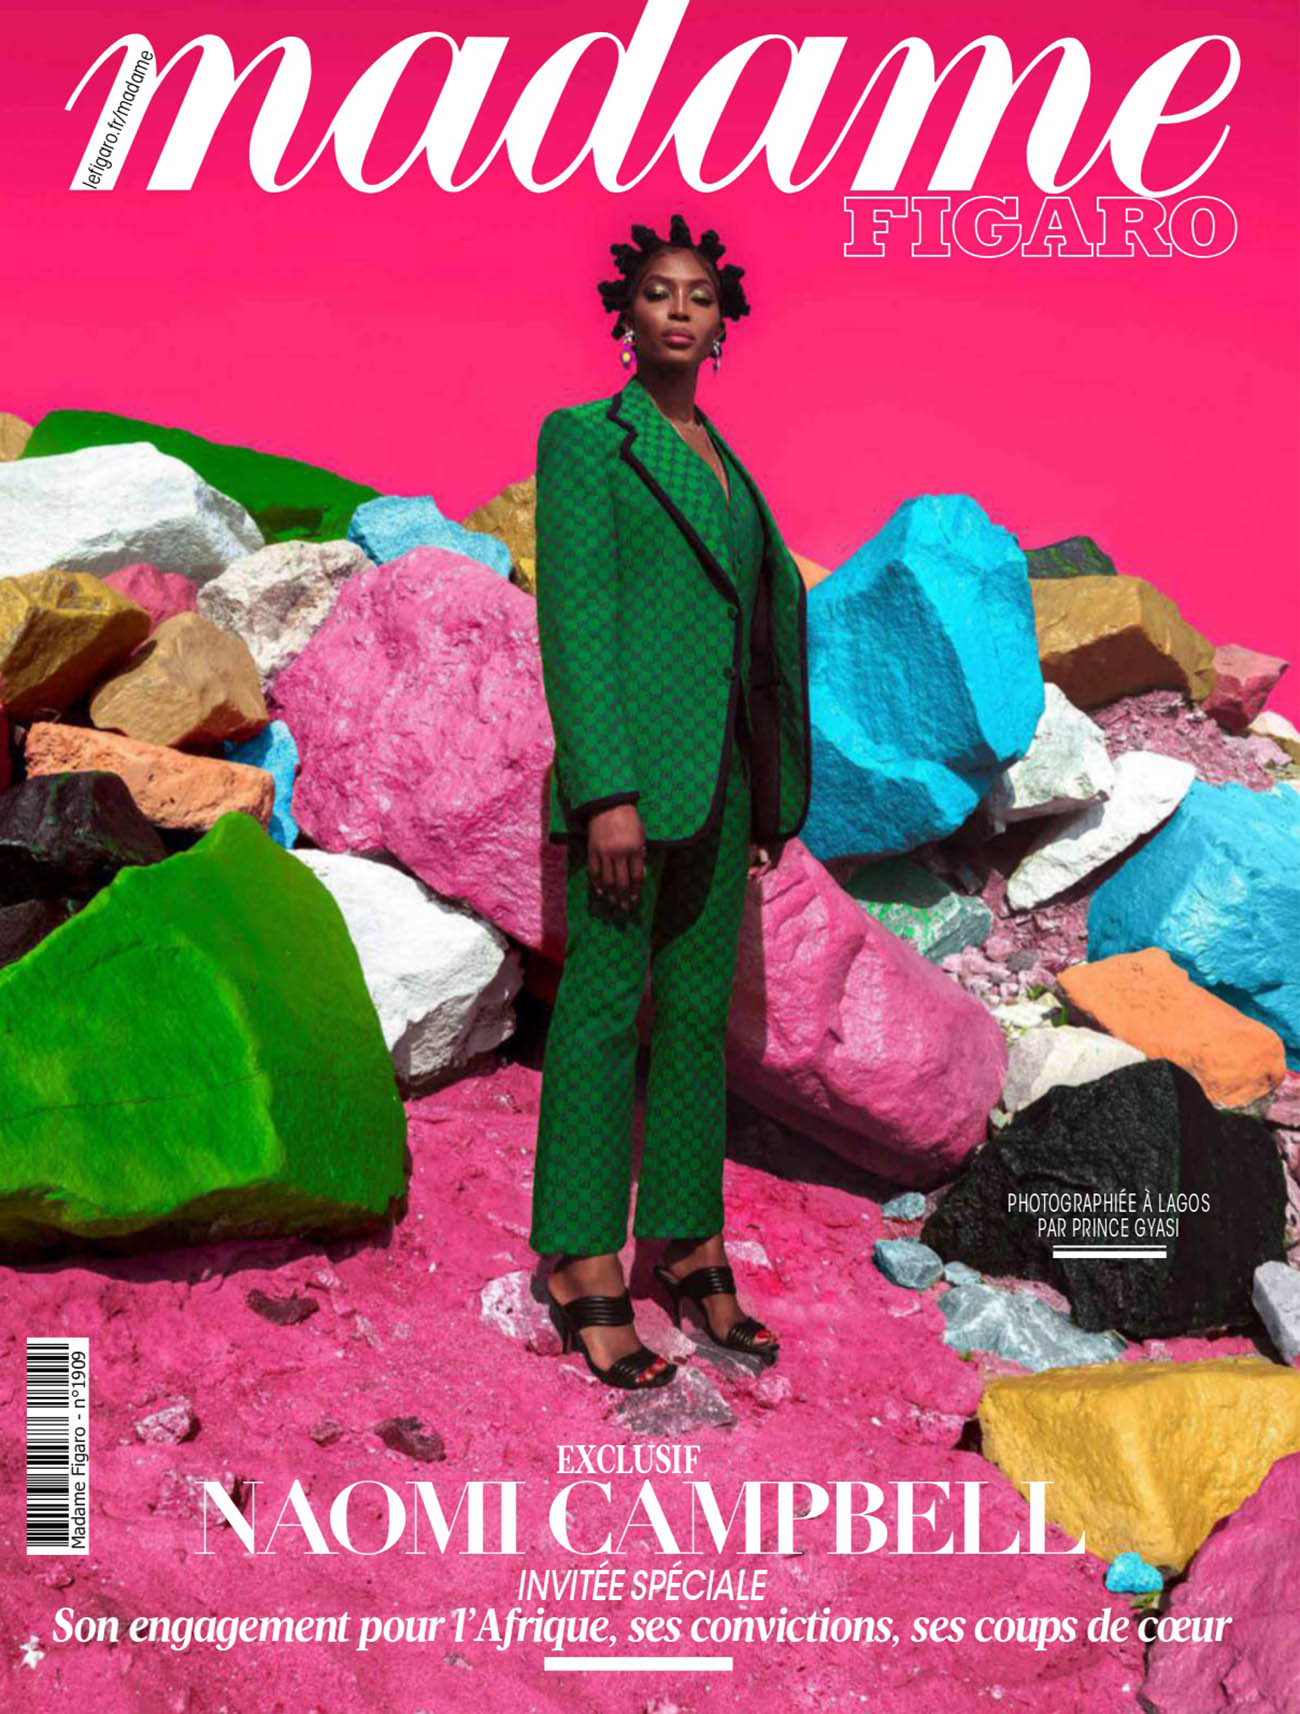 Naomi Campbell covers Madame Figaro March 26th, 2021 by Prince Gyasi